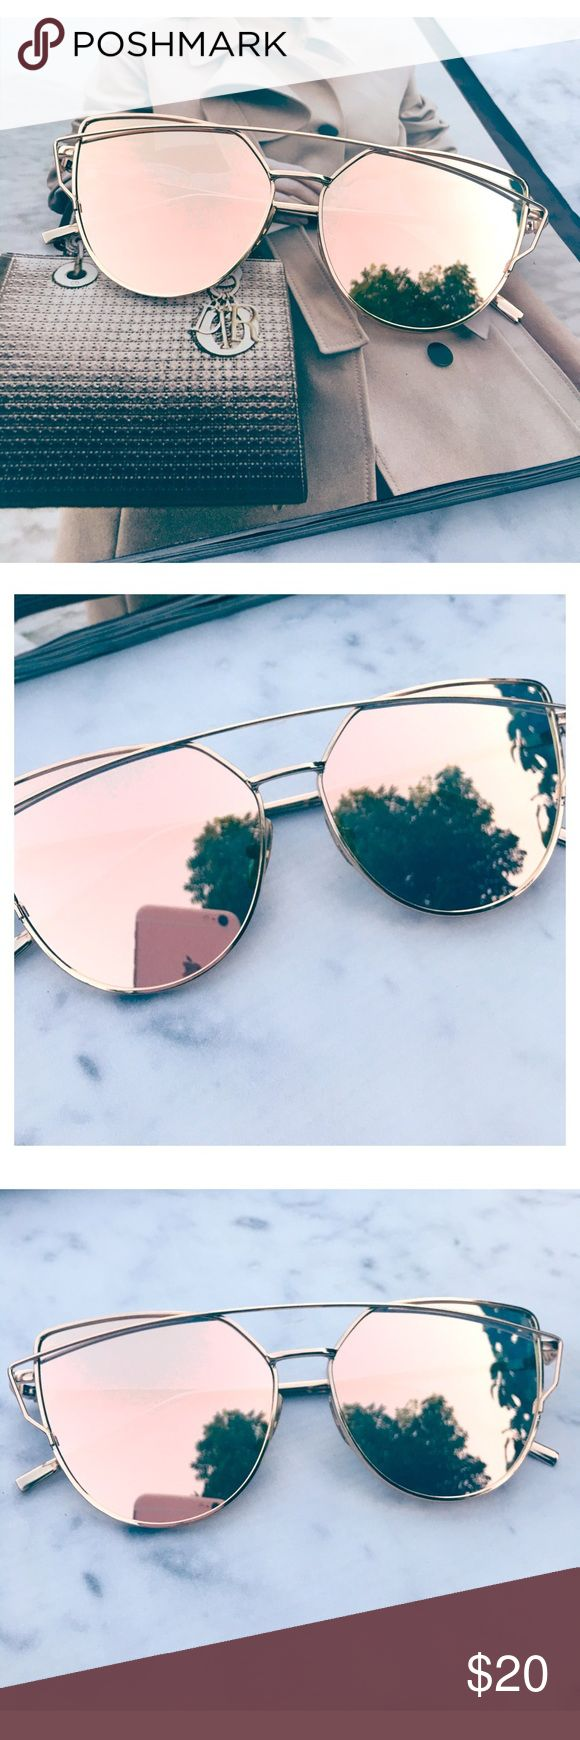 Rose Gold Mirrored Sunglasses Restocked! Cat Eye Aviator Sunglasses. This listing is for a pair of Cat Eye aviator sunshades. Rose Gold Mirrored Sunglasses. Retro. Sunglasses. Wire sunglasses. Trending sunglasses. UV protection. Top quality! Brand new! Bundle and save! ✨1 for $20, 2 for $30, 3 for $40✨ Accessories Glasses